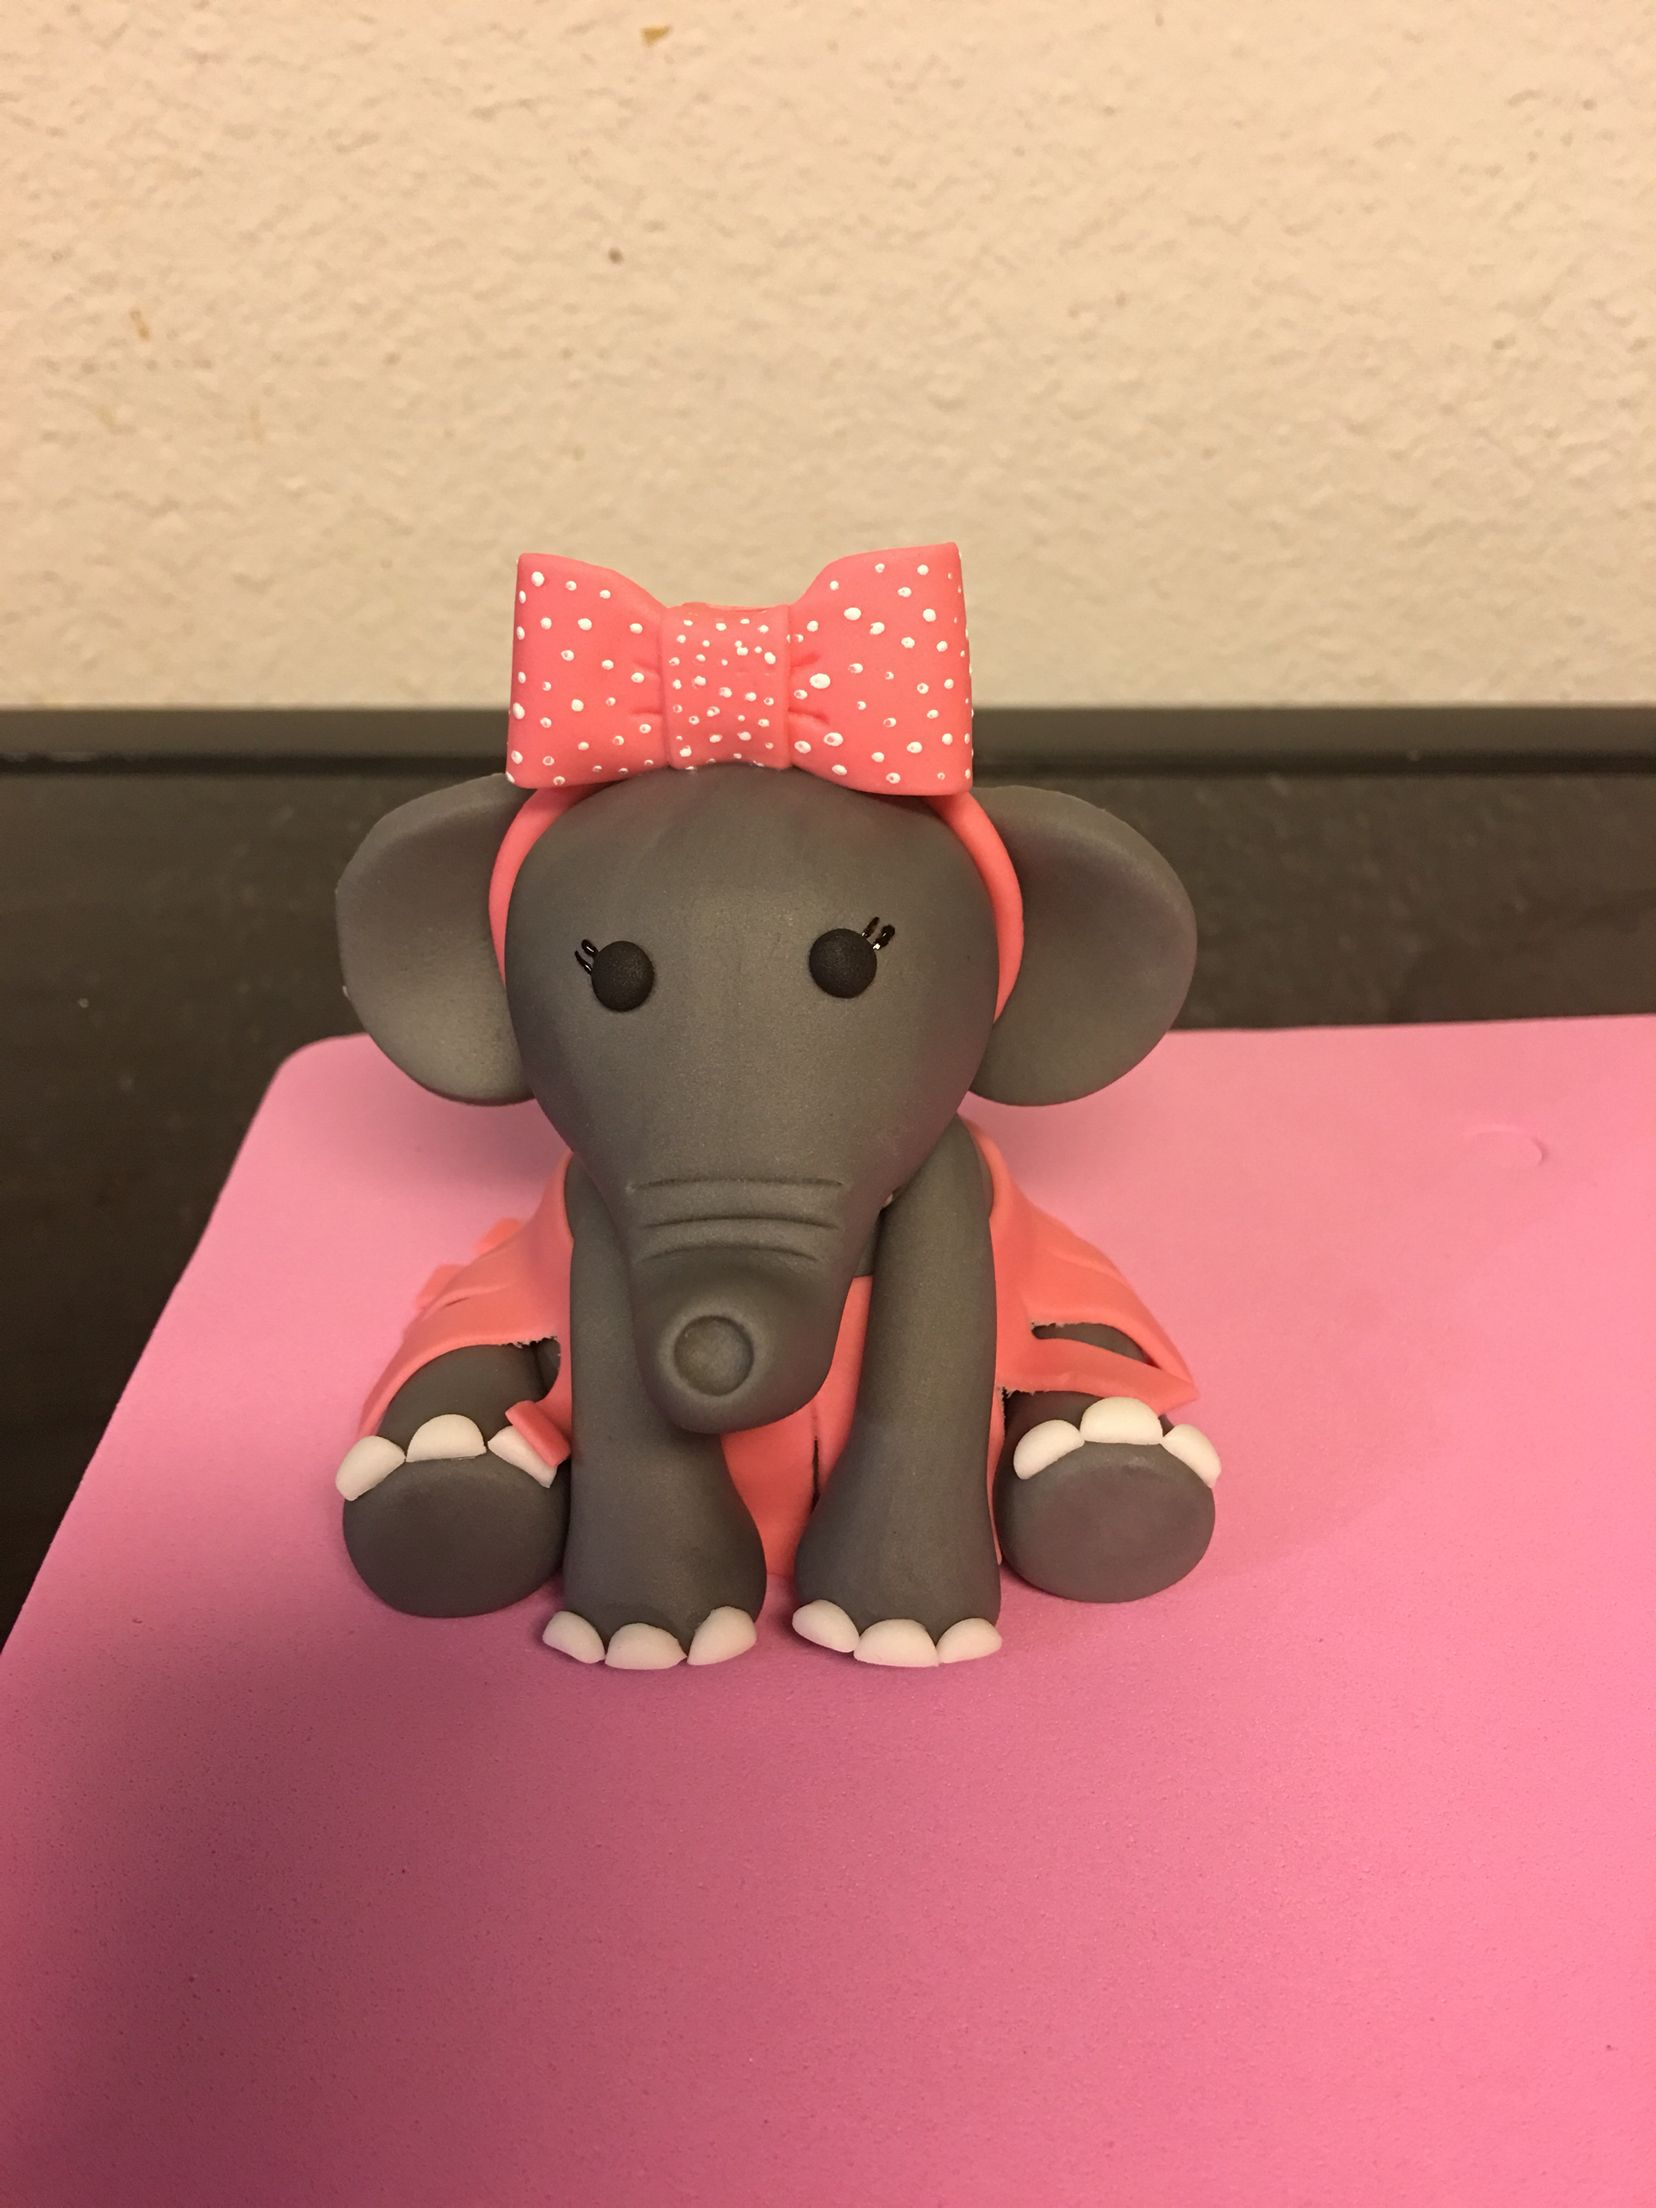 Pin by Kortnie Dotson on My cake creations Novelty lamp